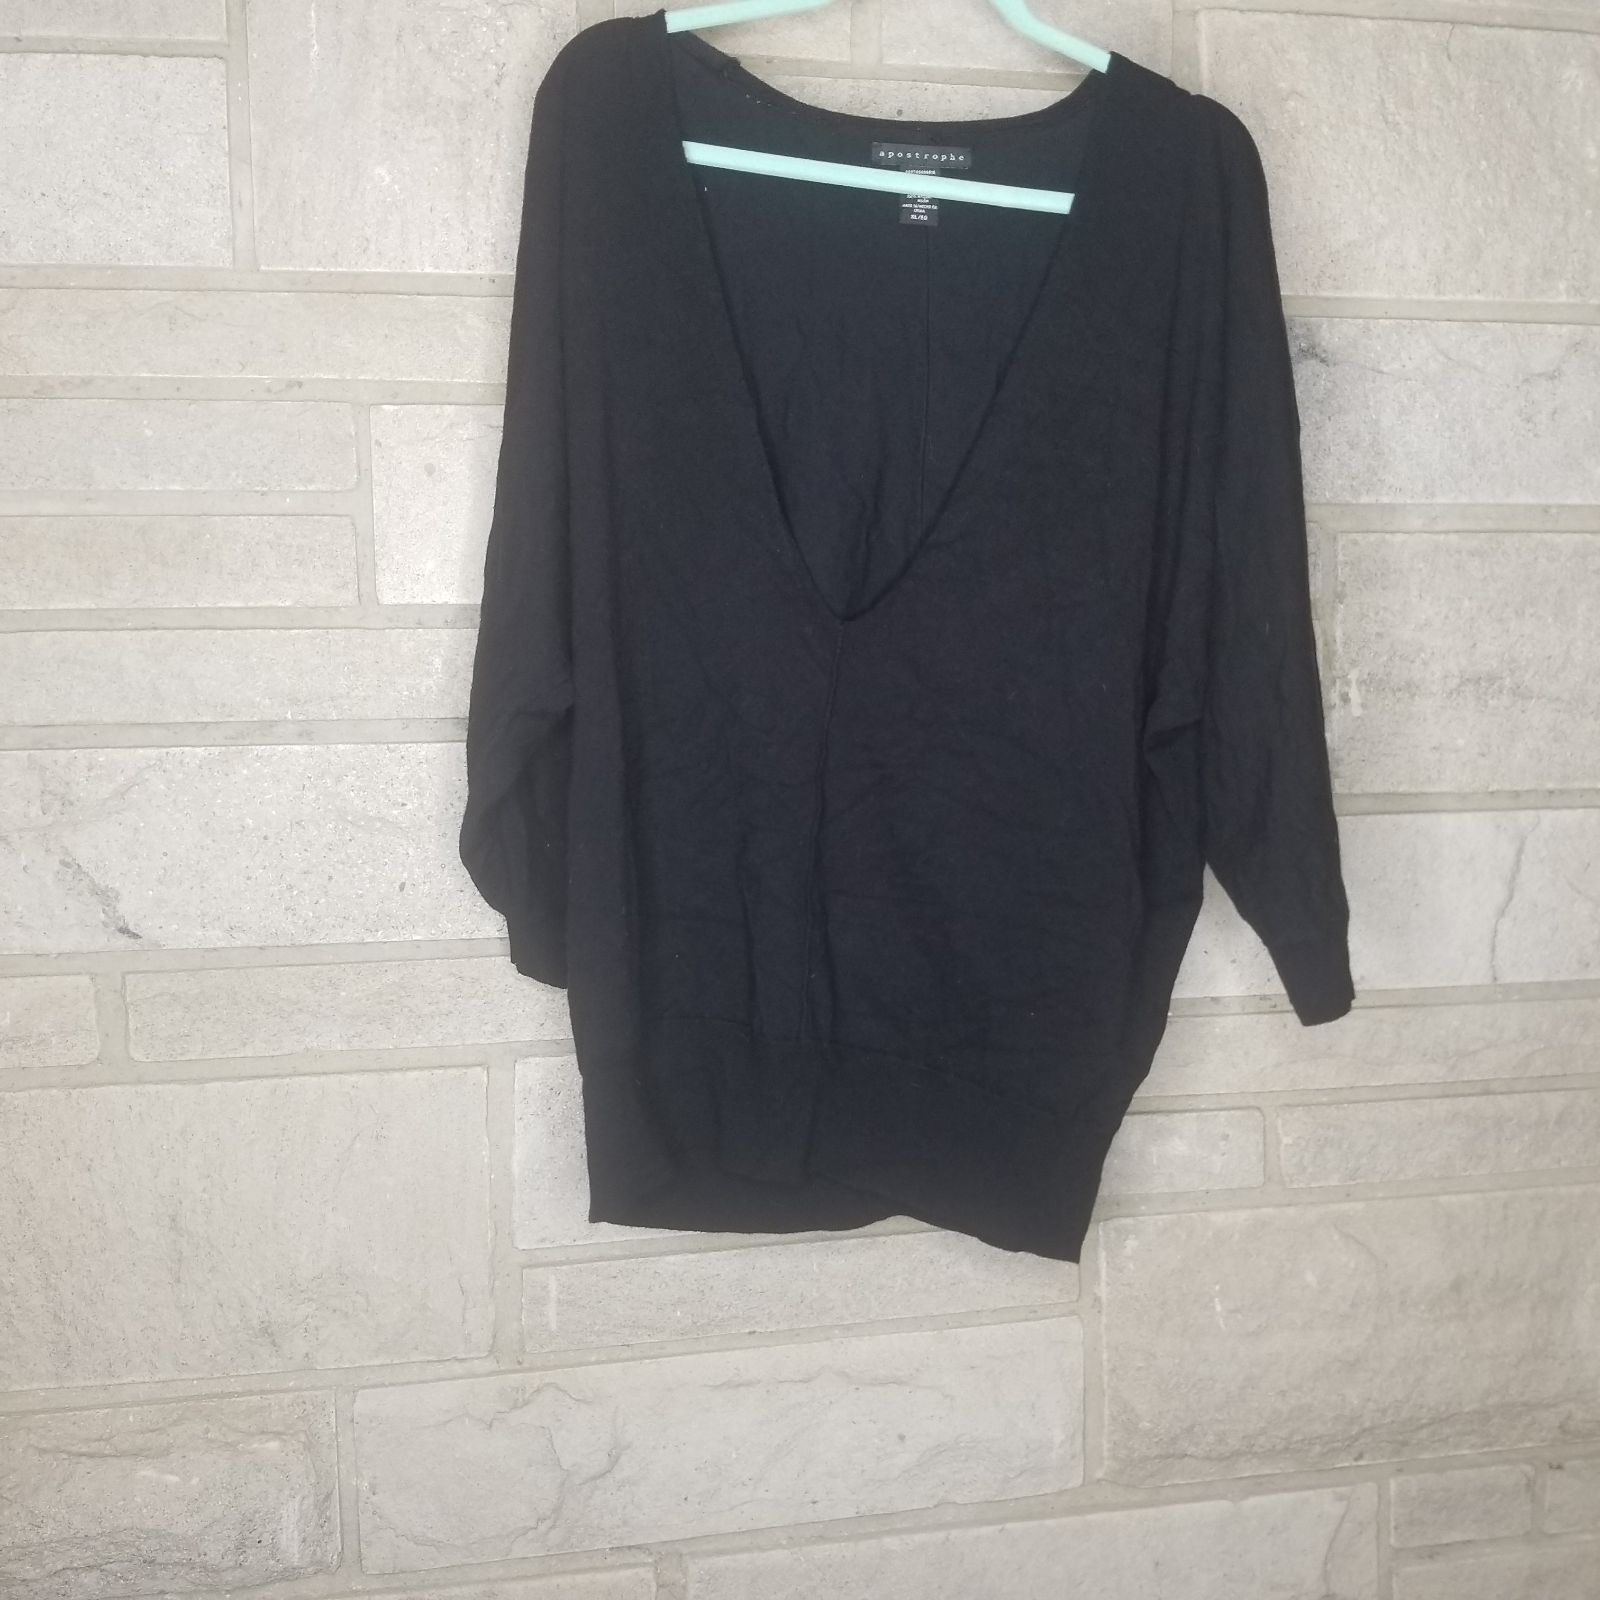 Apostrophe XL black top